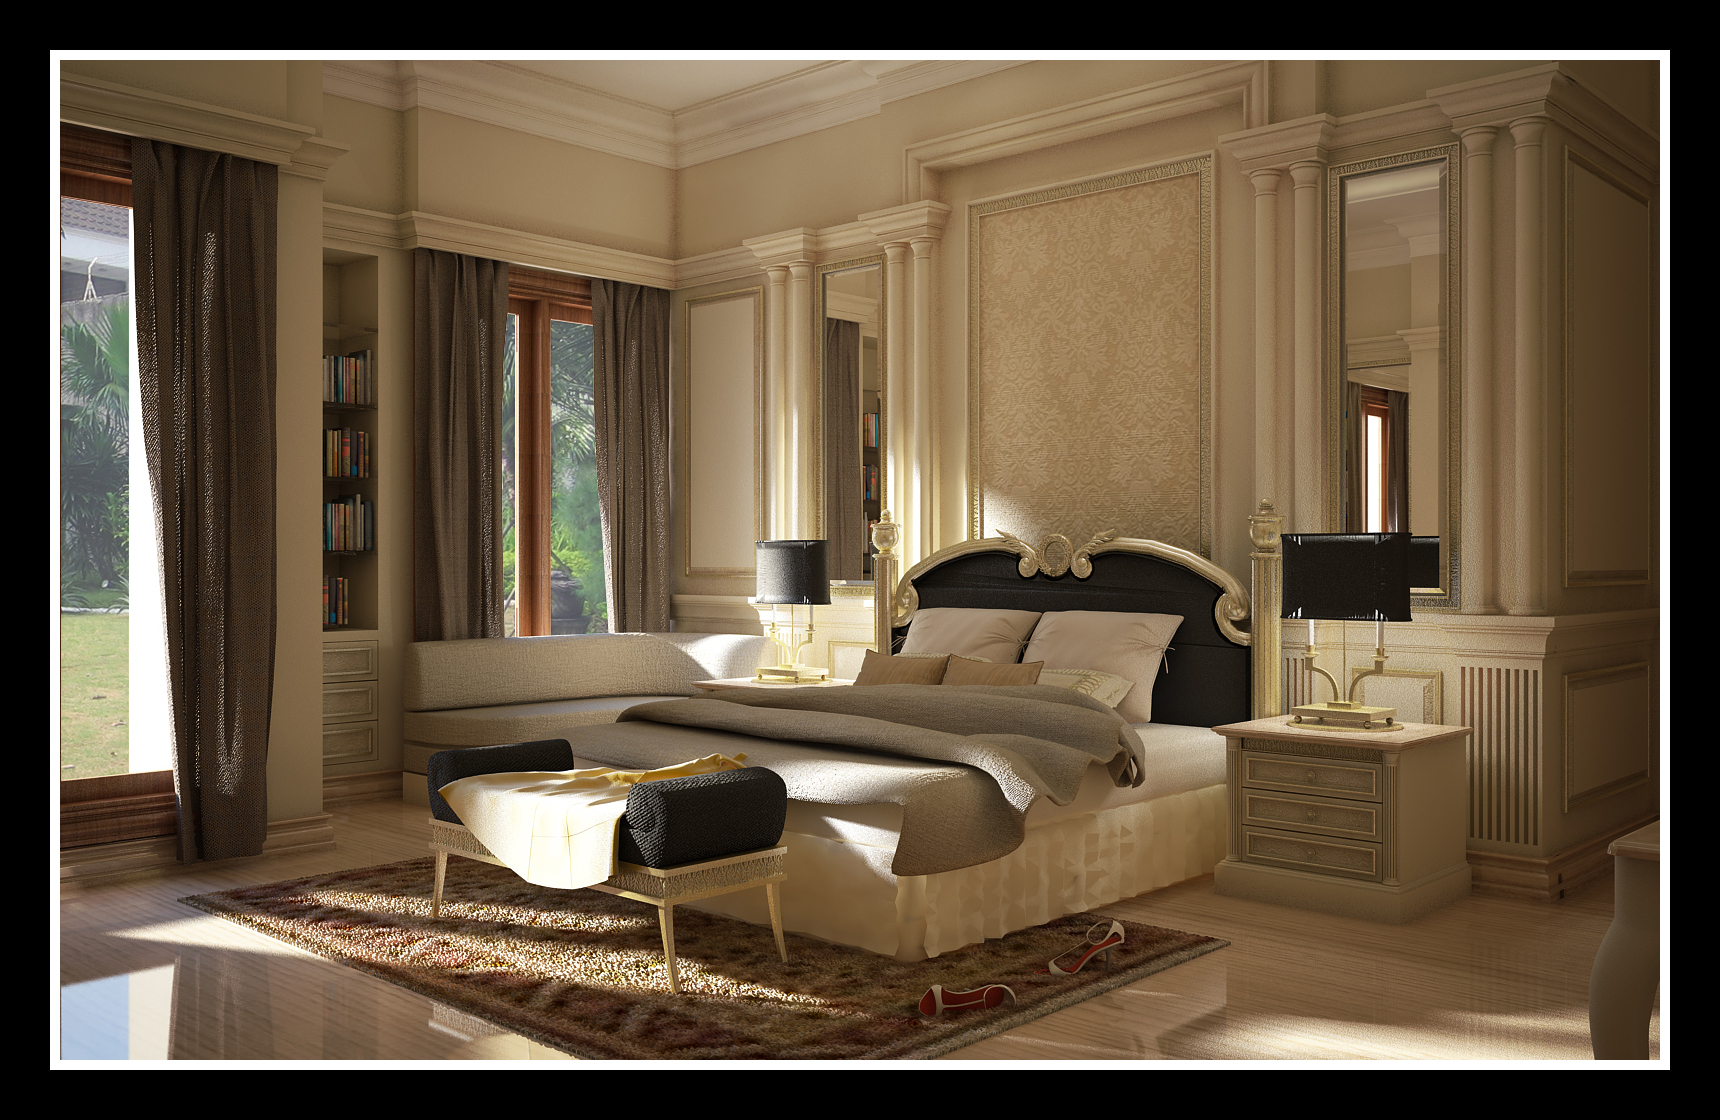 Interior design 3d home designer - Bedrooms designs ...